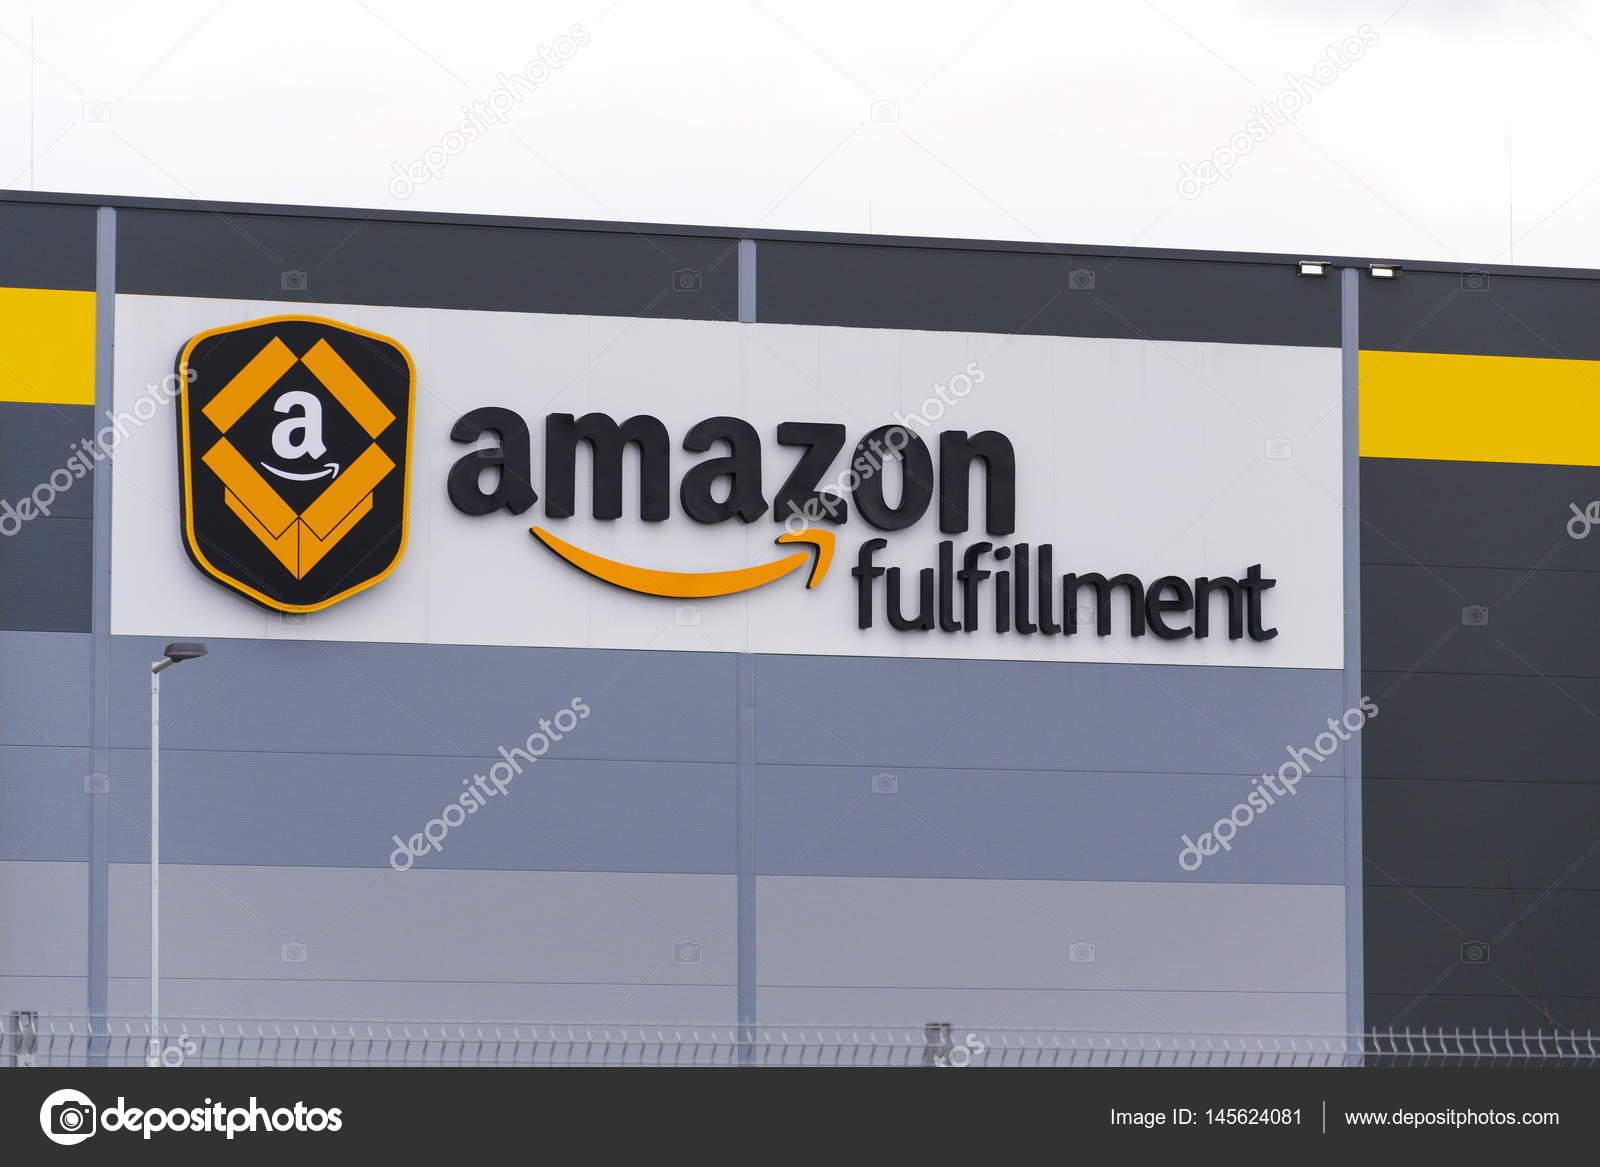 b75b366c2 DOBROVIZ, CZECH REPUBLIC - MARCH 12: Online retailer company Amazon  fulfillment logistics building on March 12, 2017 in Dobroviz, Czech  republic.